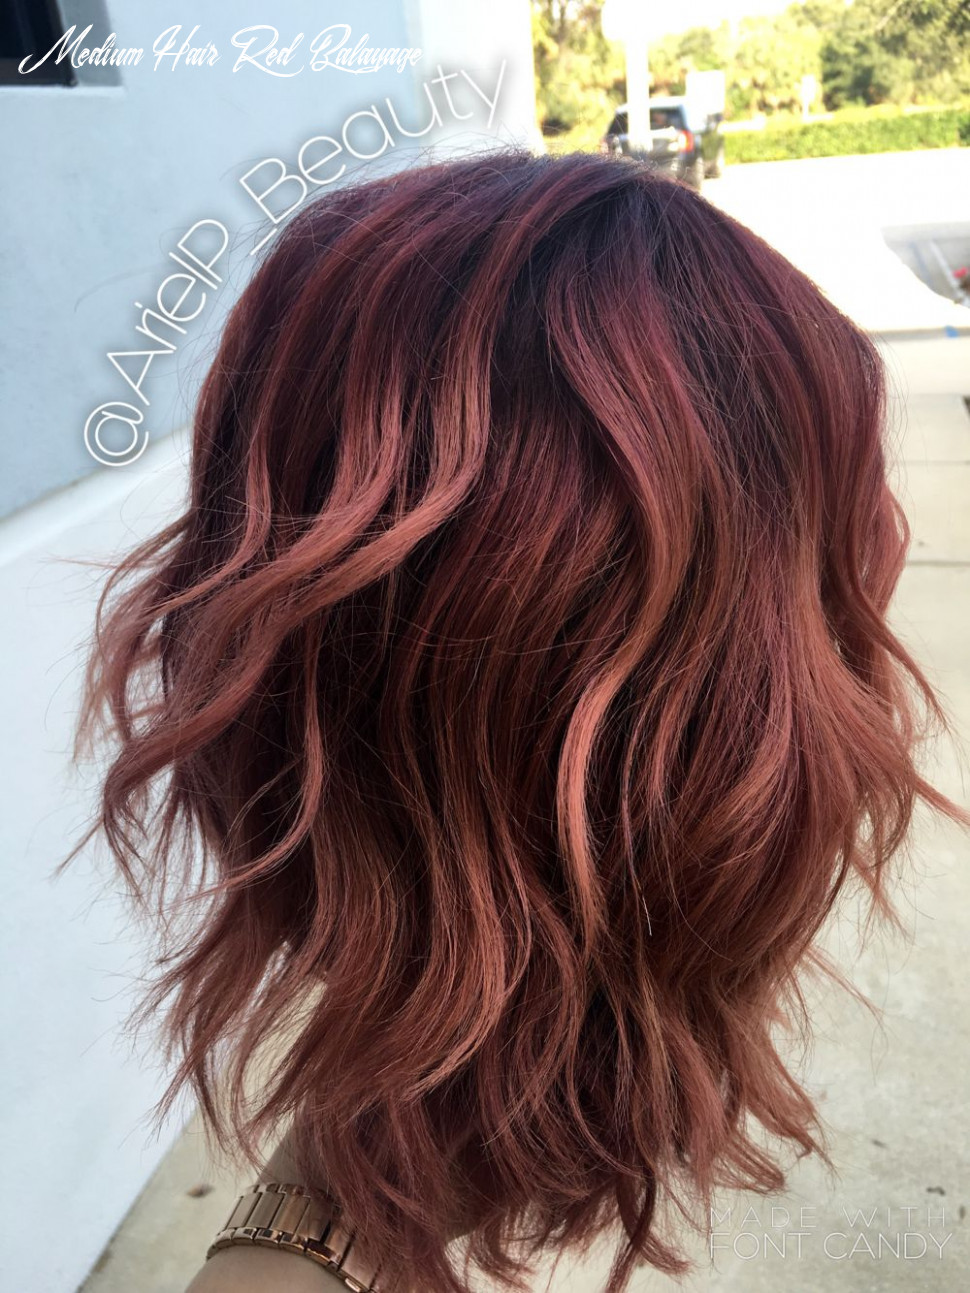 Colormelt/balayage/baliage/ombre/pink/purple/plum/colored hair